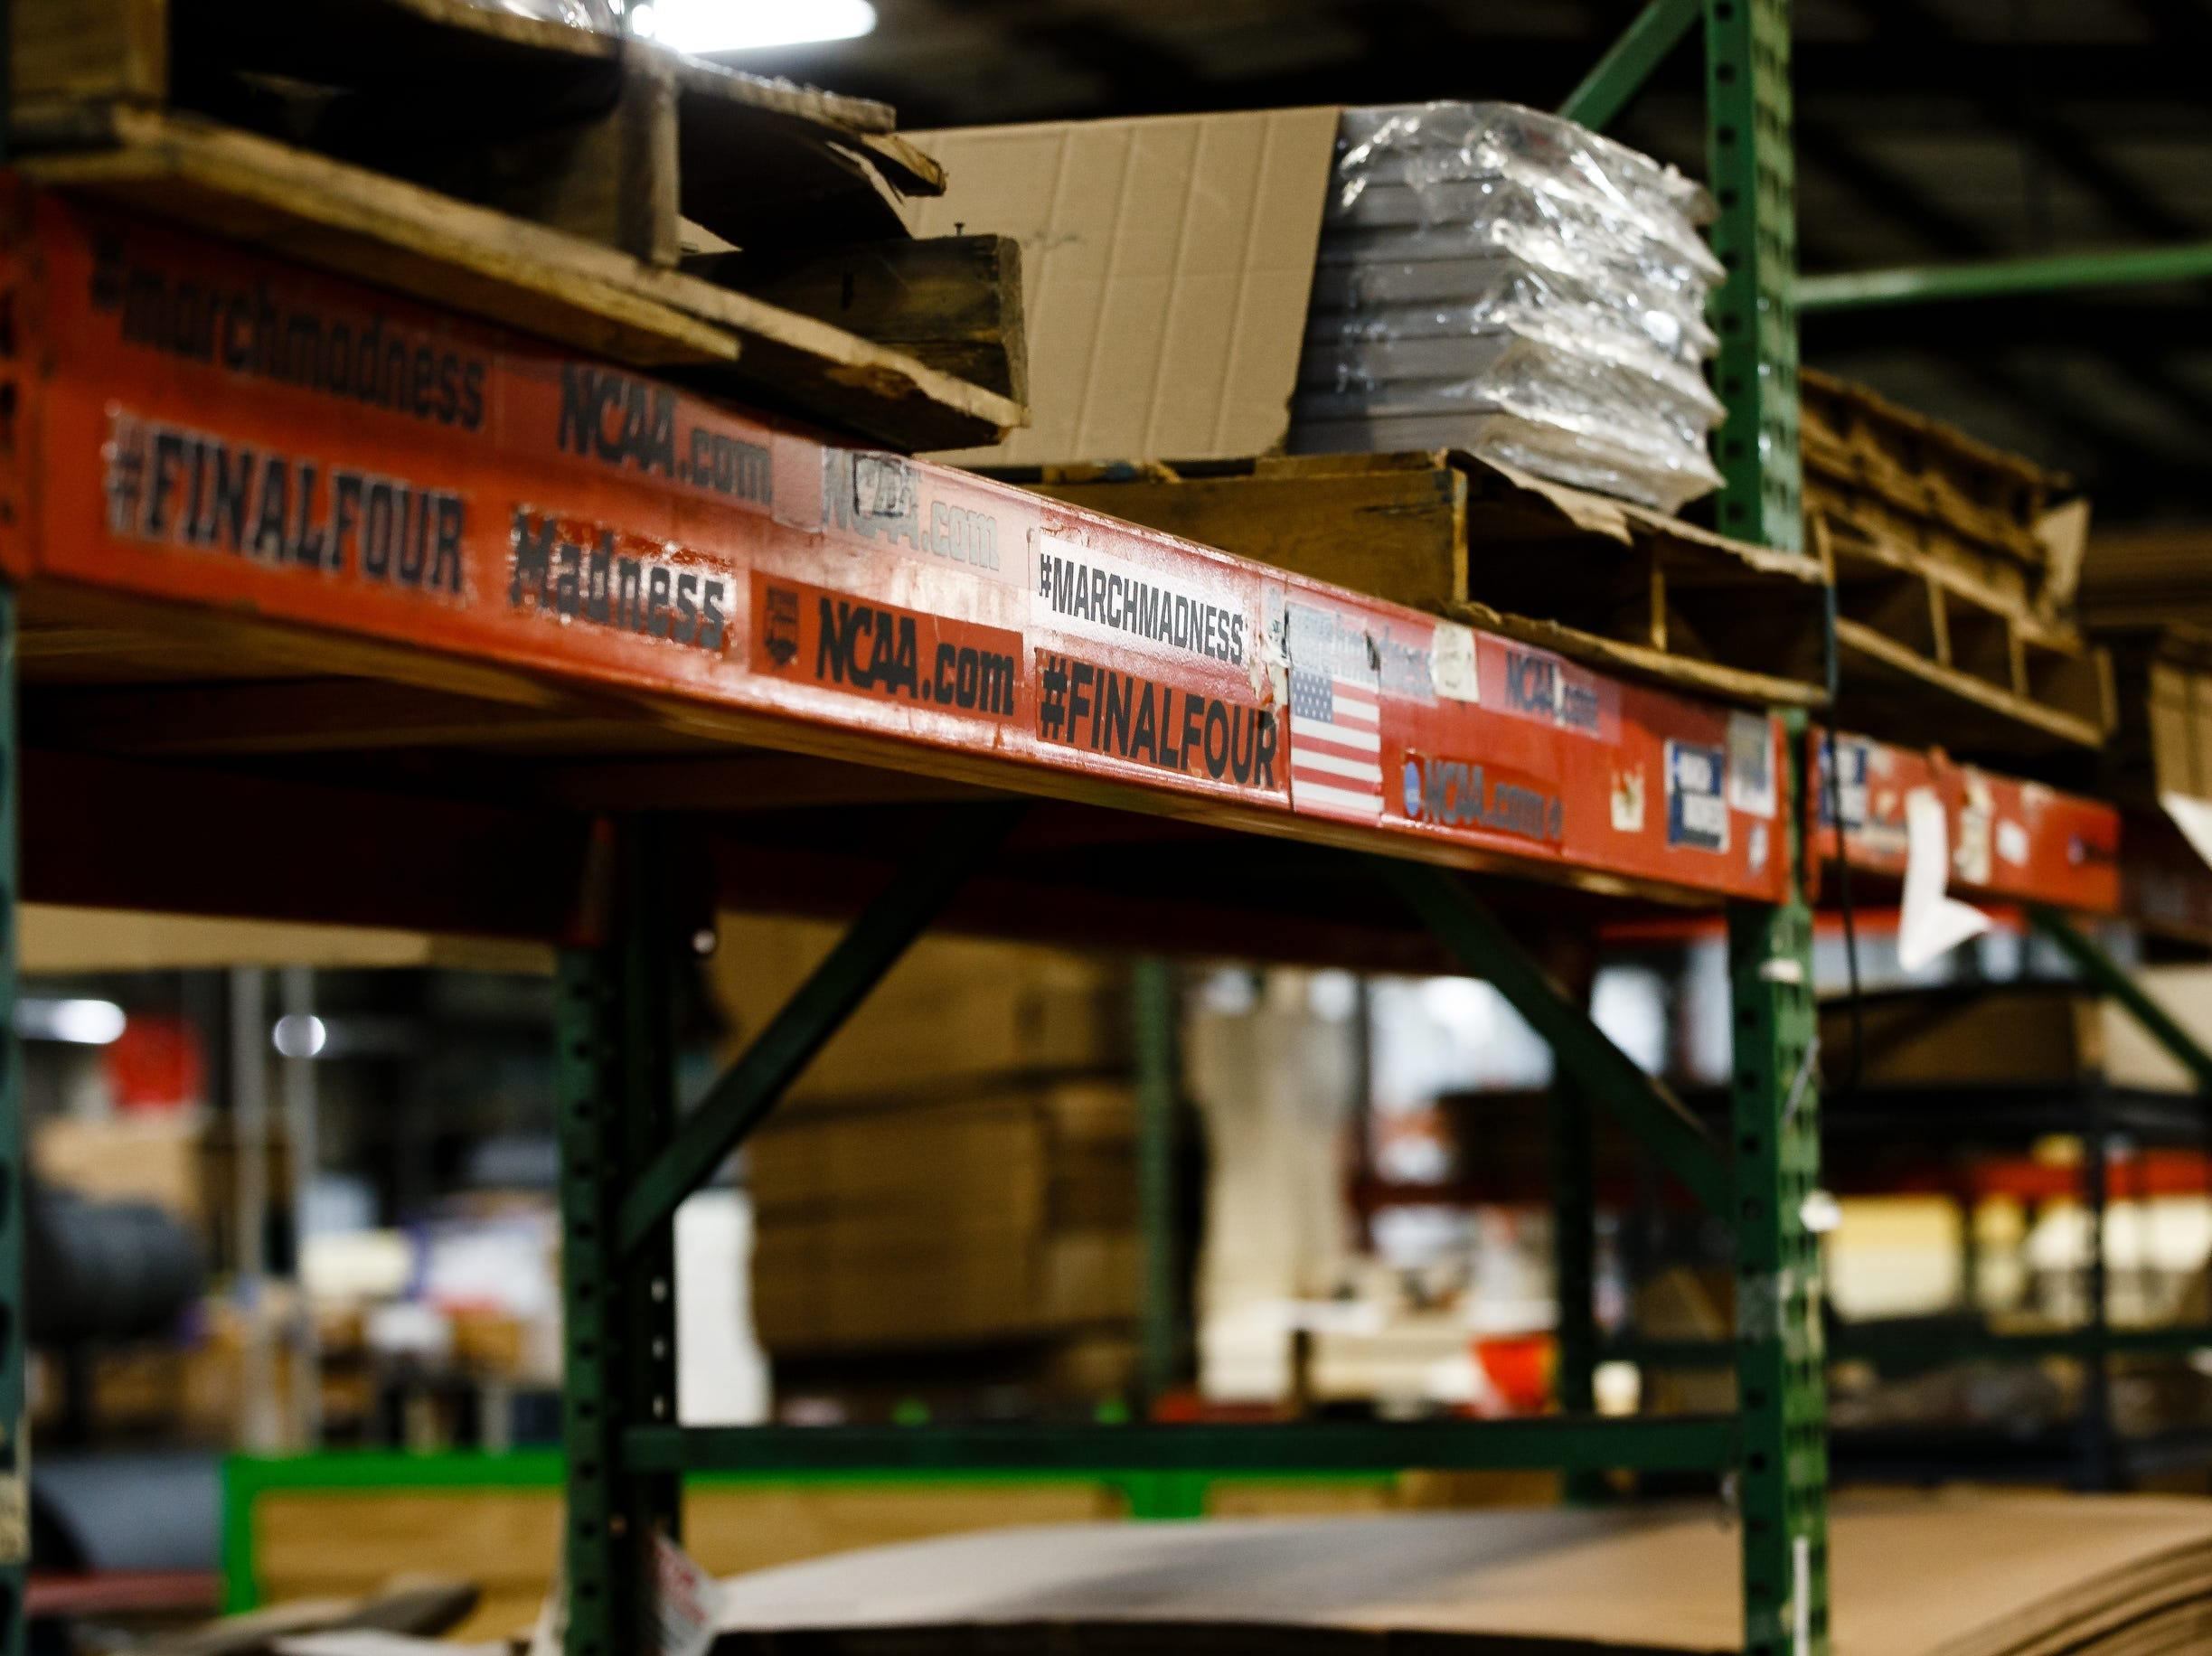 Stickers and decals adorn shelving at the AAI facility in Jefferson on Wednesday, March 13, 2019. AAI is the official supplier of basketball back stops for NBA, NCAA, WNBA and the NBA G-League. They make all their products, as well as a full line of gymnastics and tumbling equipment out of this factory in Jefferson where they were founded.